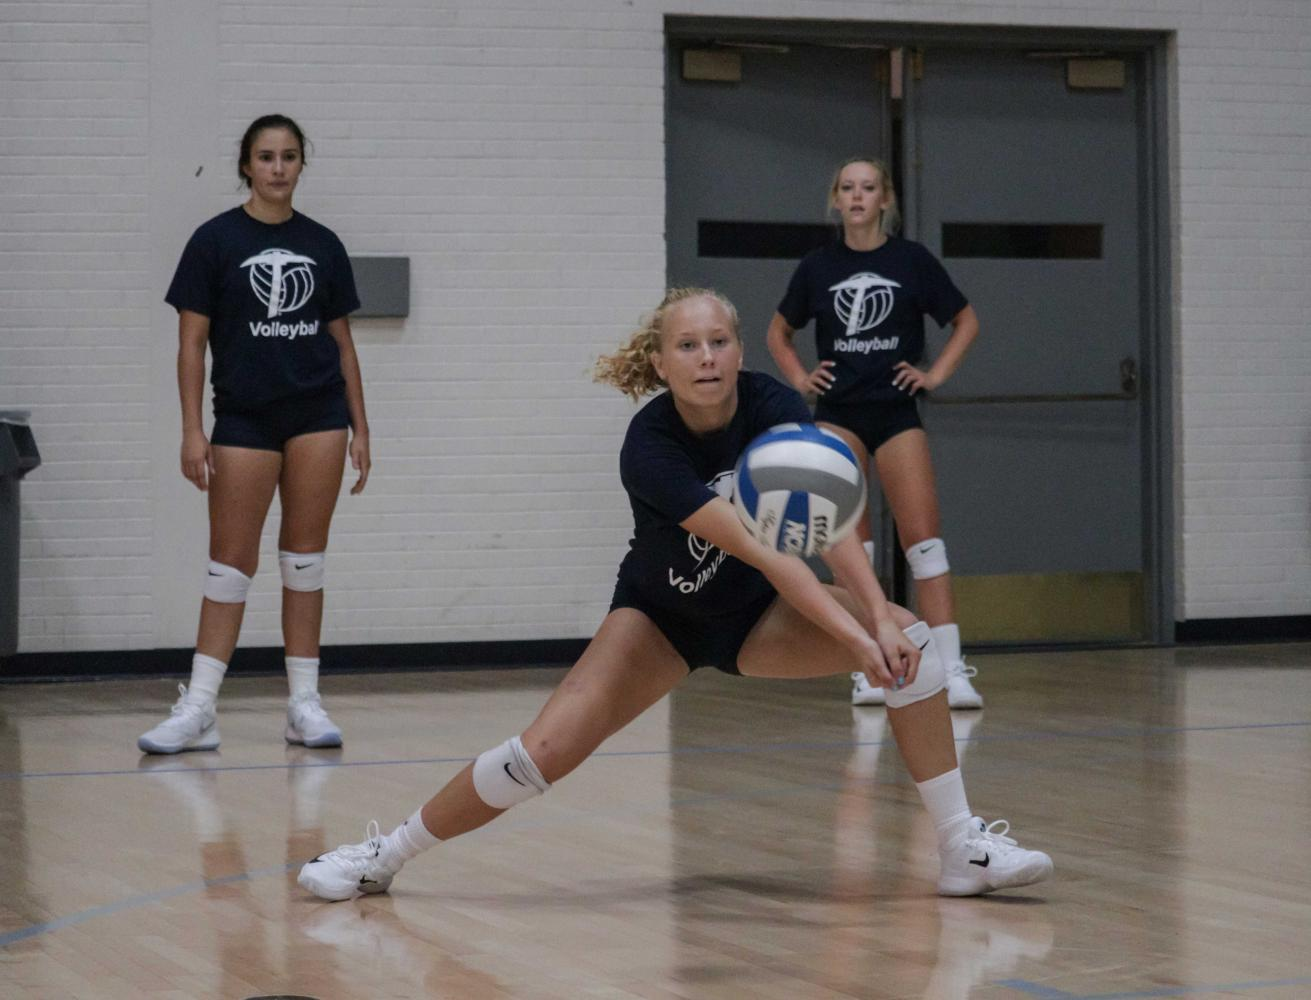 UTEP women's volleyball players practiced a variety of drills to improve and sharpen their skills.